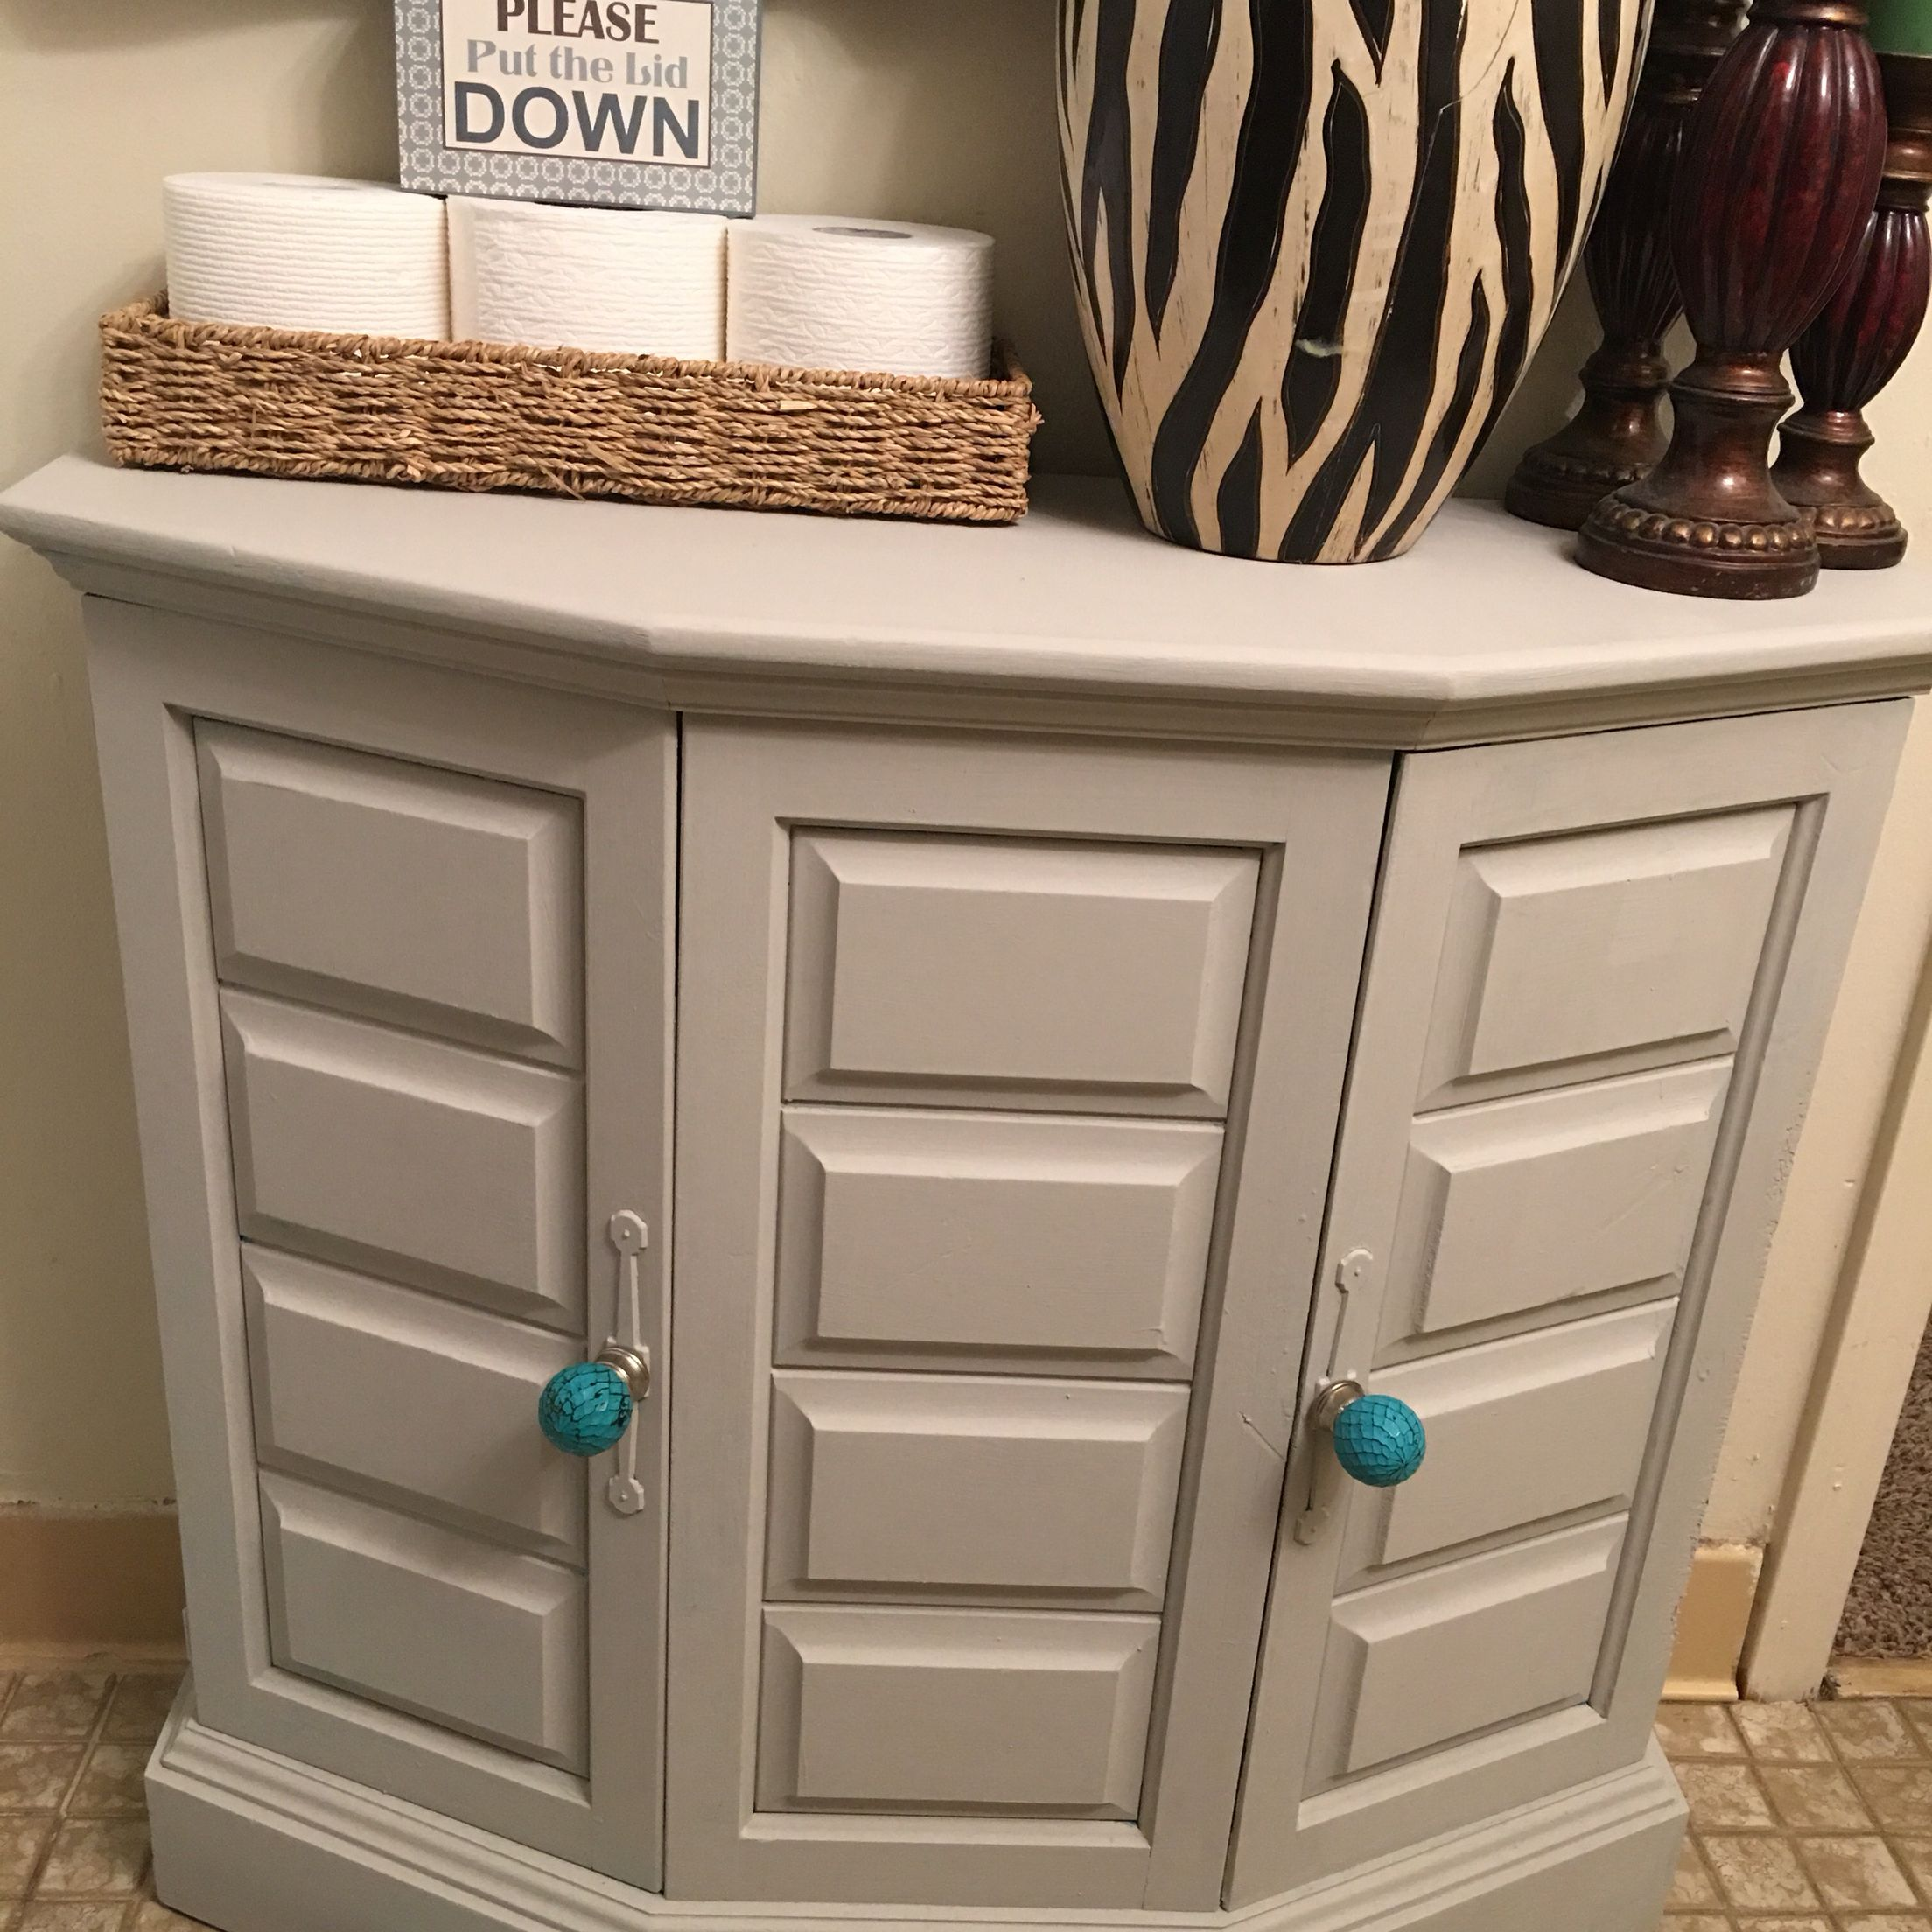 Chalk Paint Vs Enamel For Kitchen Cabinets: Painted Cabinet With Americana Decor Chalk Paint In Color